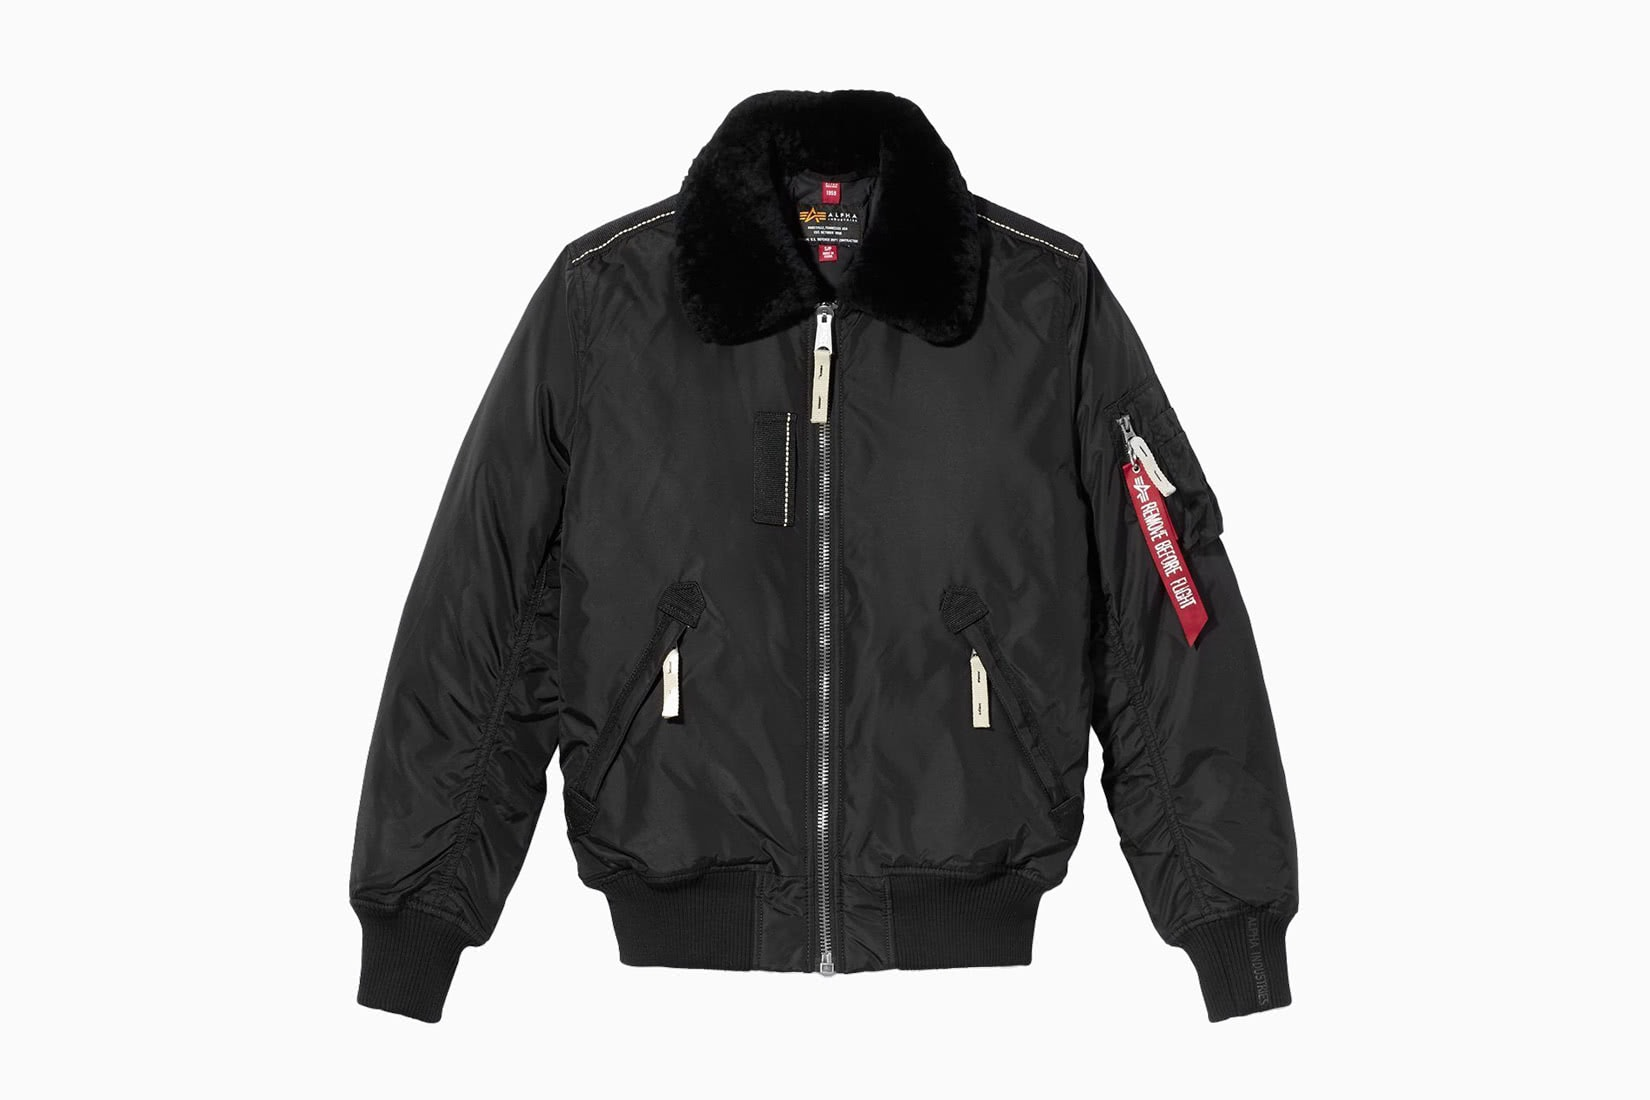 best men bomber jacket durable Alpha Industries Injector III review - Luxe Digital